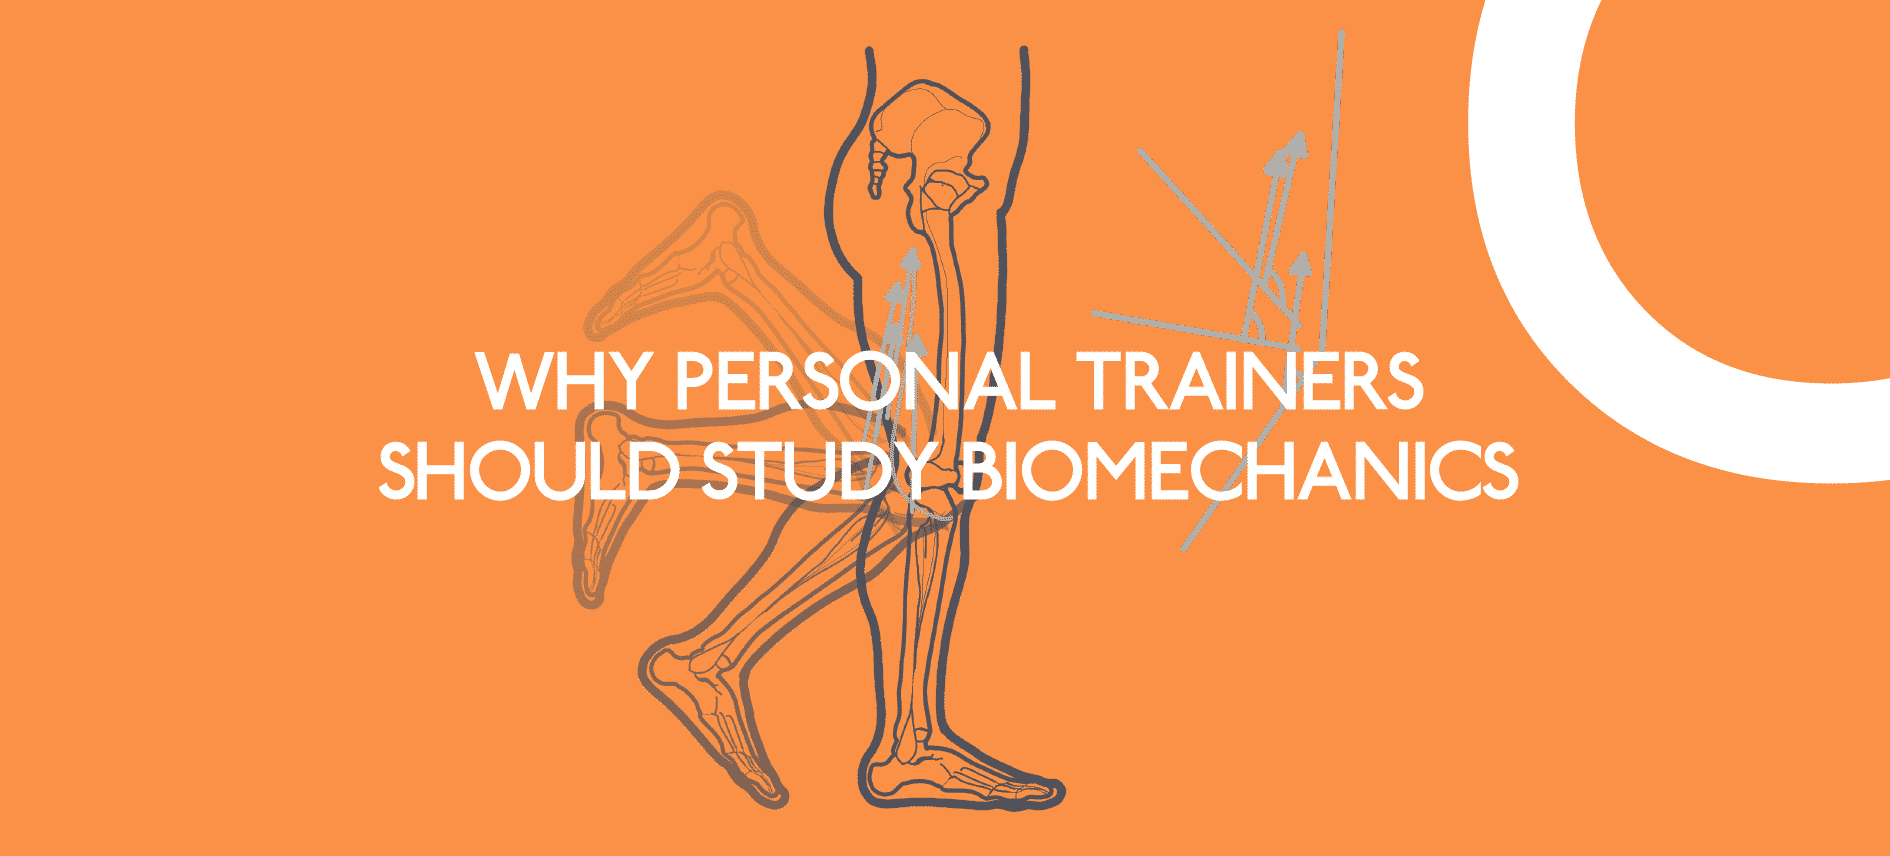 WHY-PERSONAL-TRAINERS-SHOULD-STUDY-BIOMECHANICS-_Web-x2-Lo-Res_5